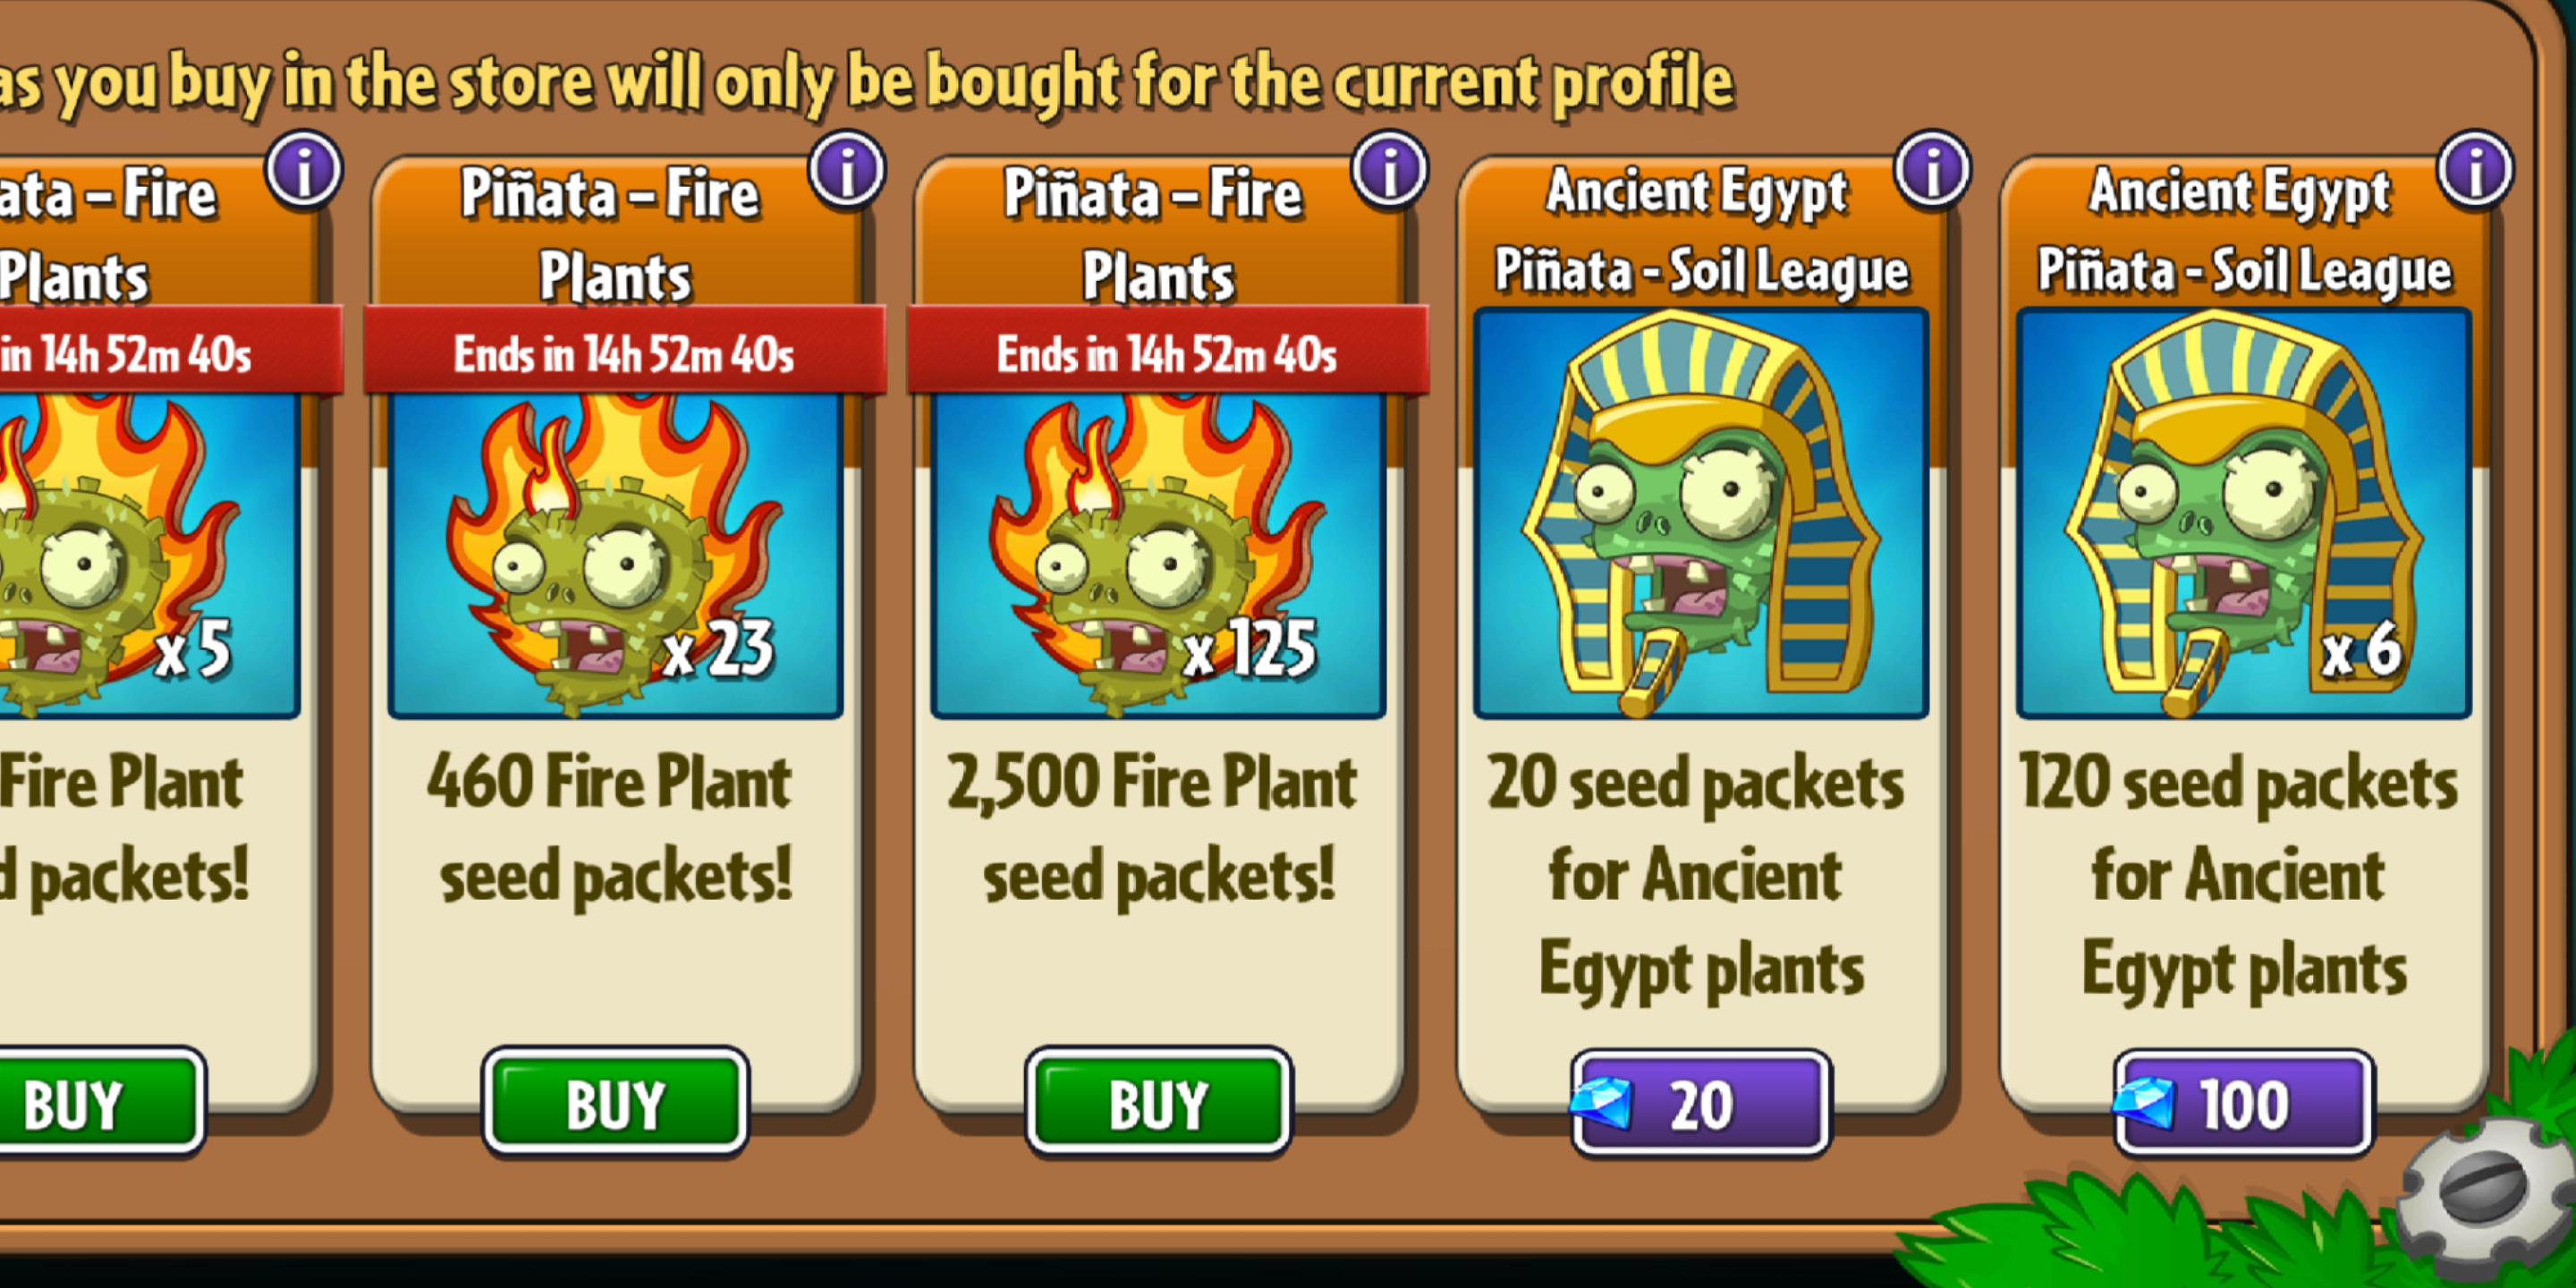 In PvZ2 the Piñata store shows Soil League piñatas after